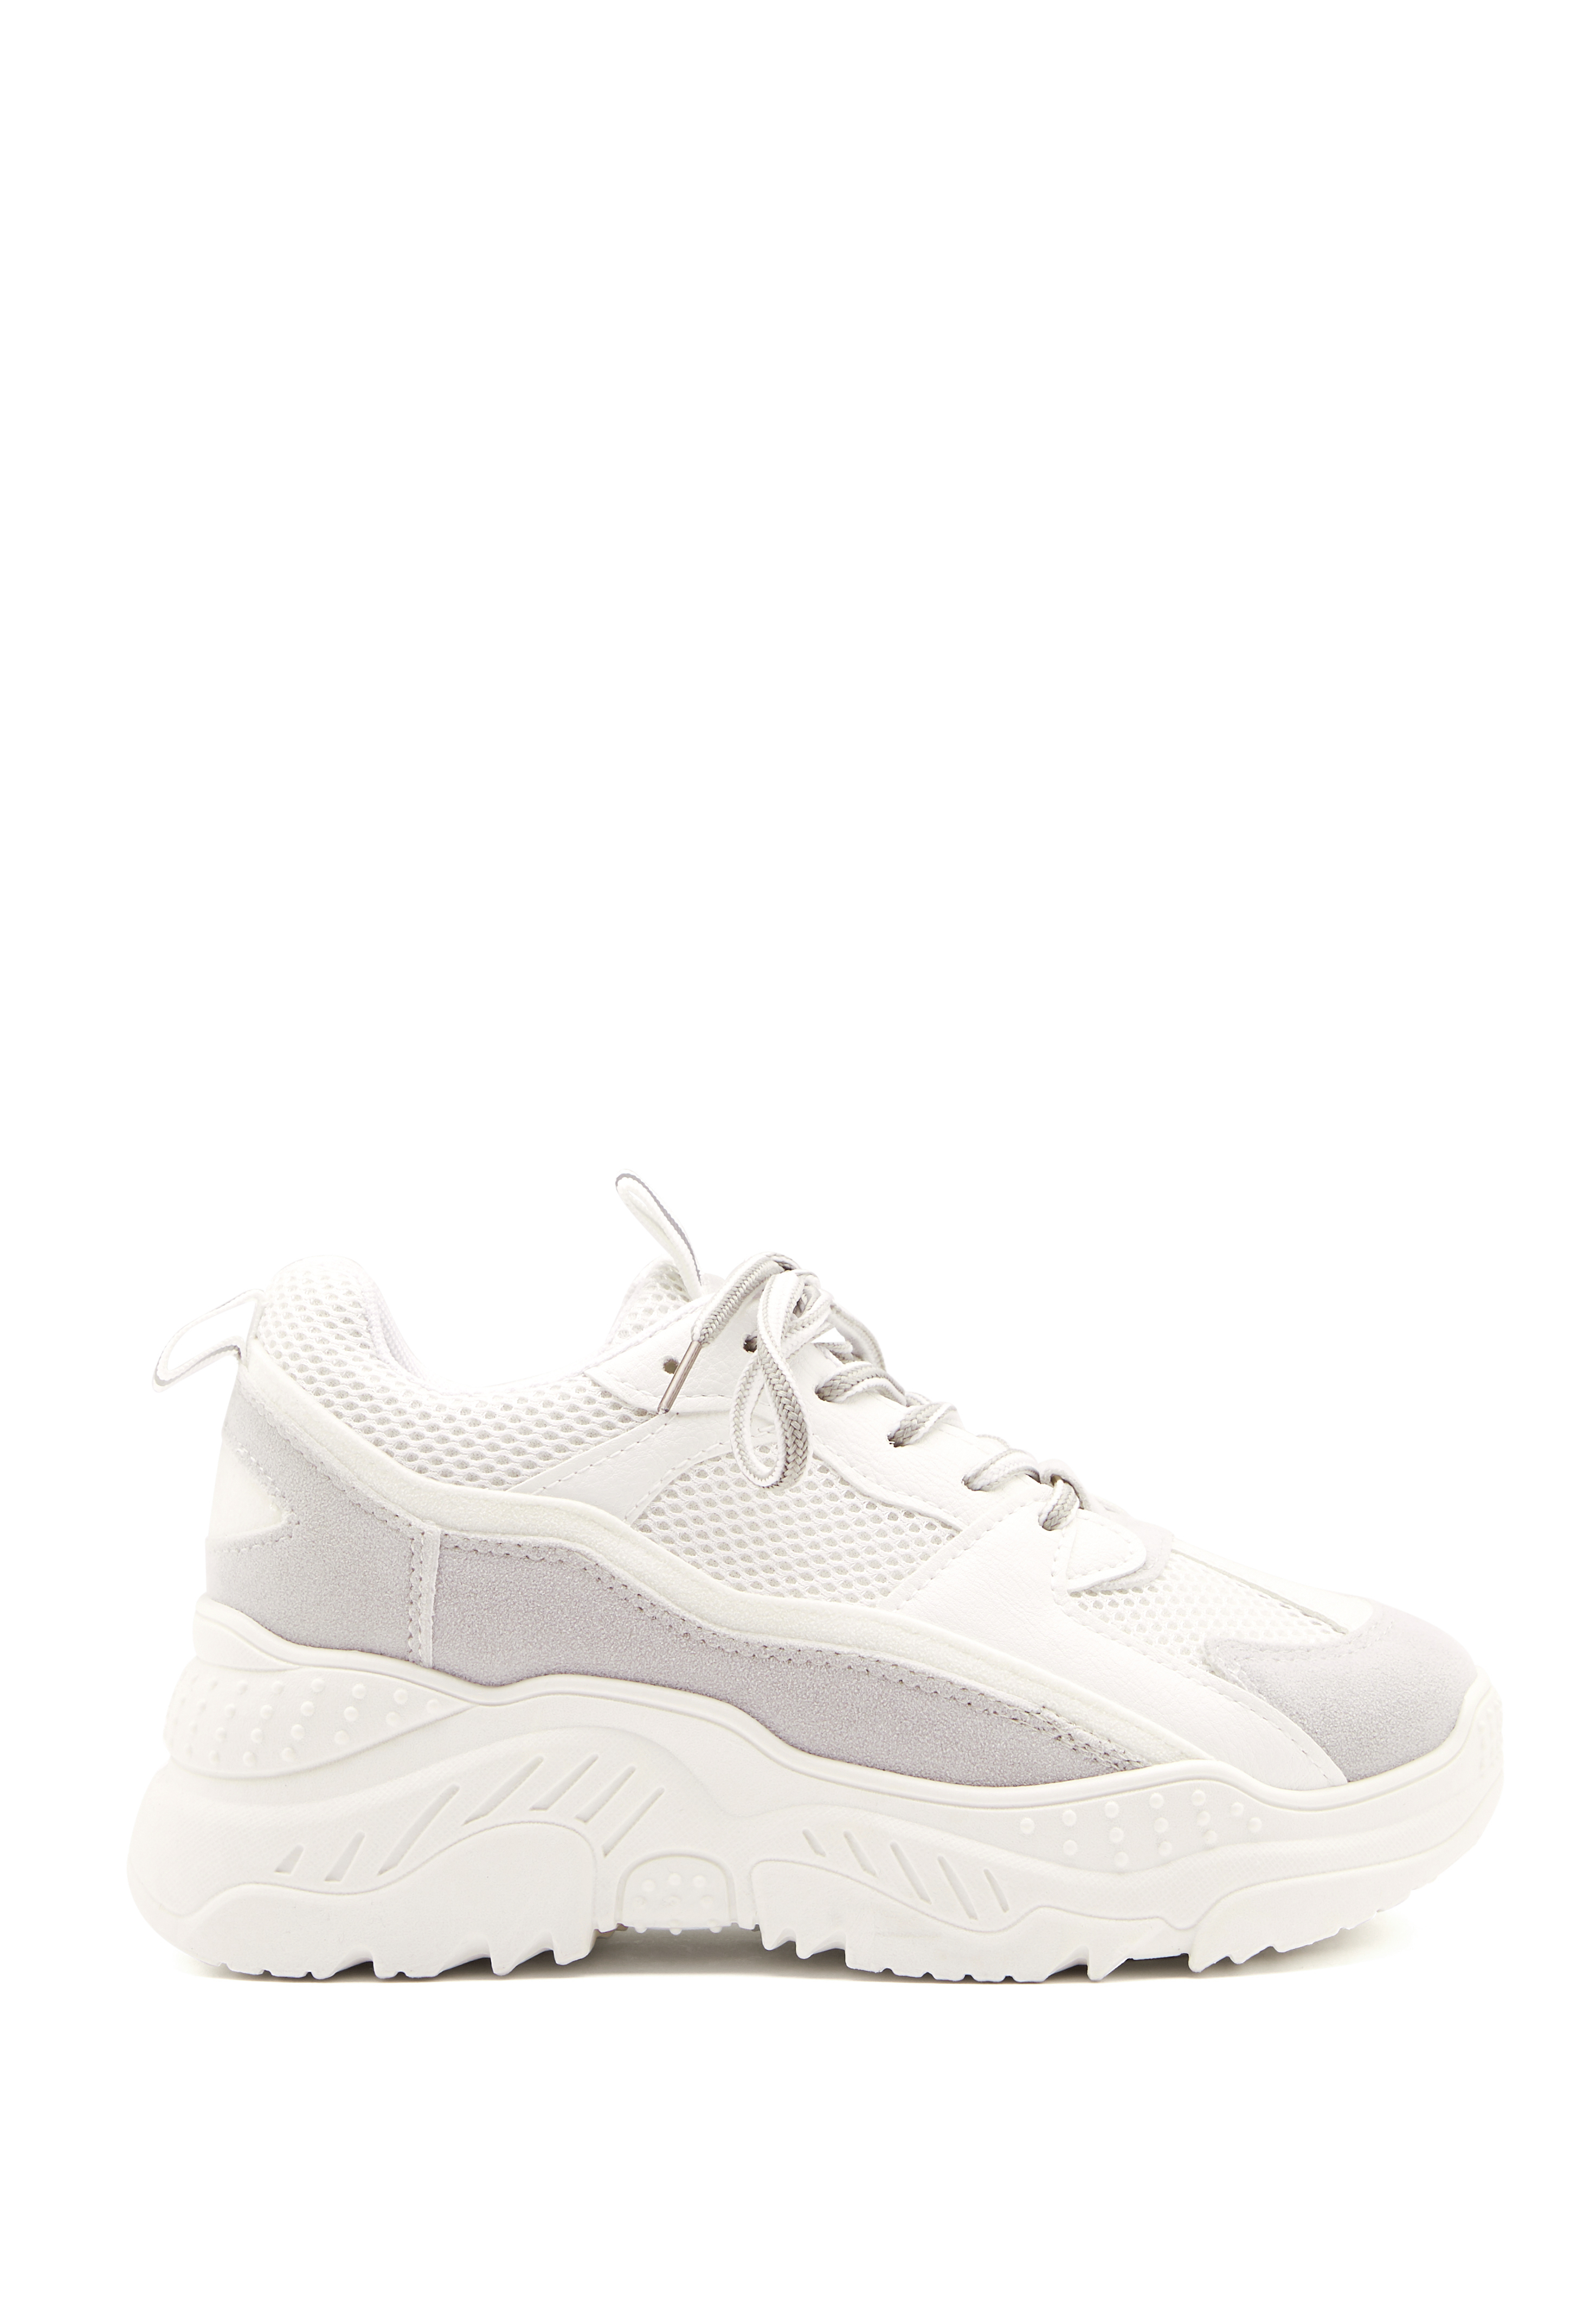 21 Best White Sneakers & Shoes For Men in 2020: Leather